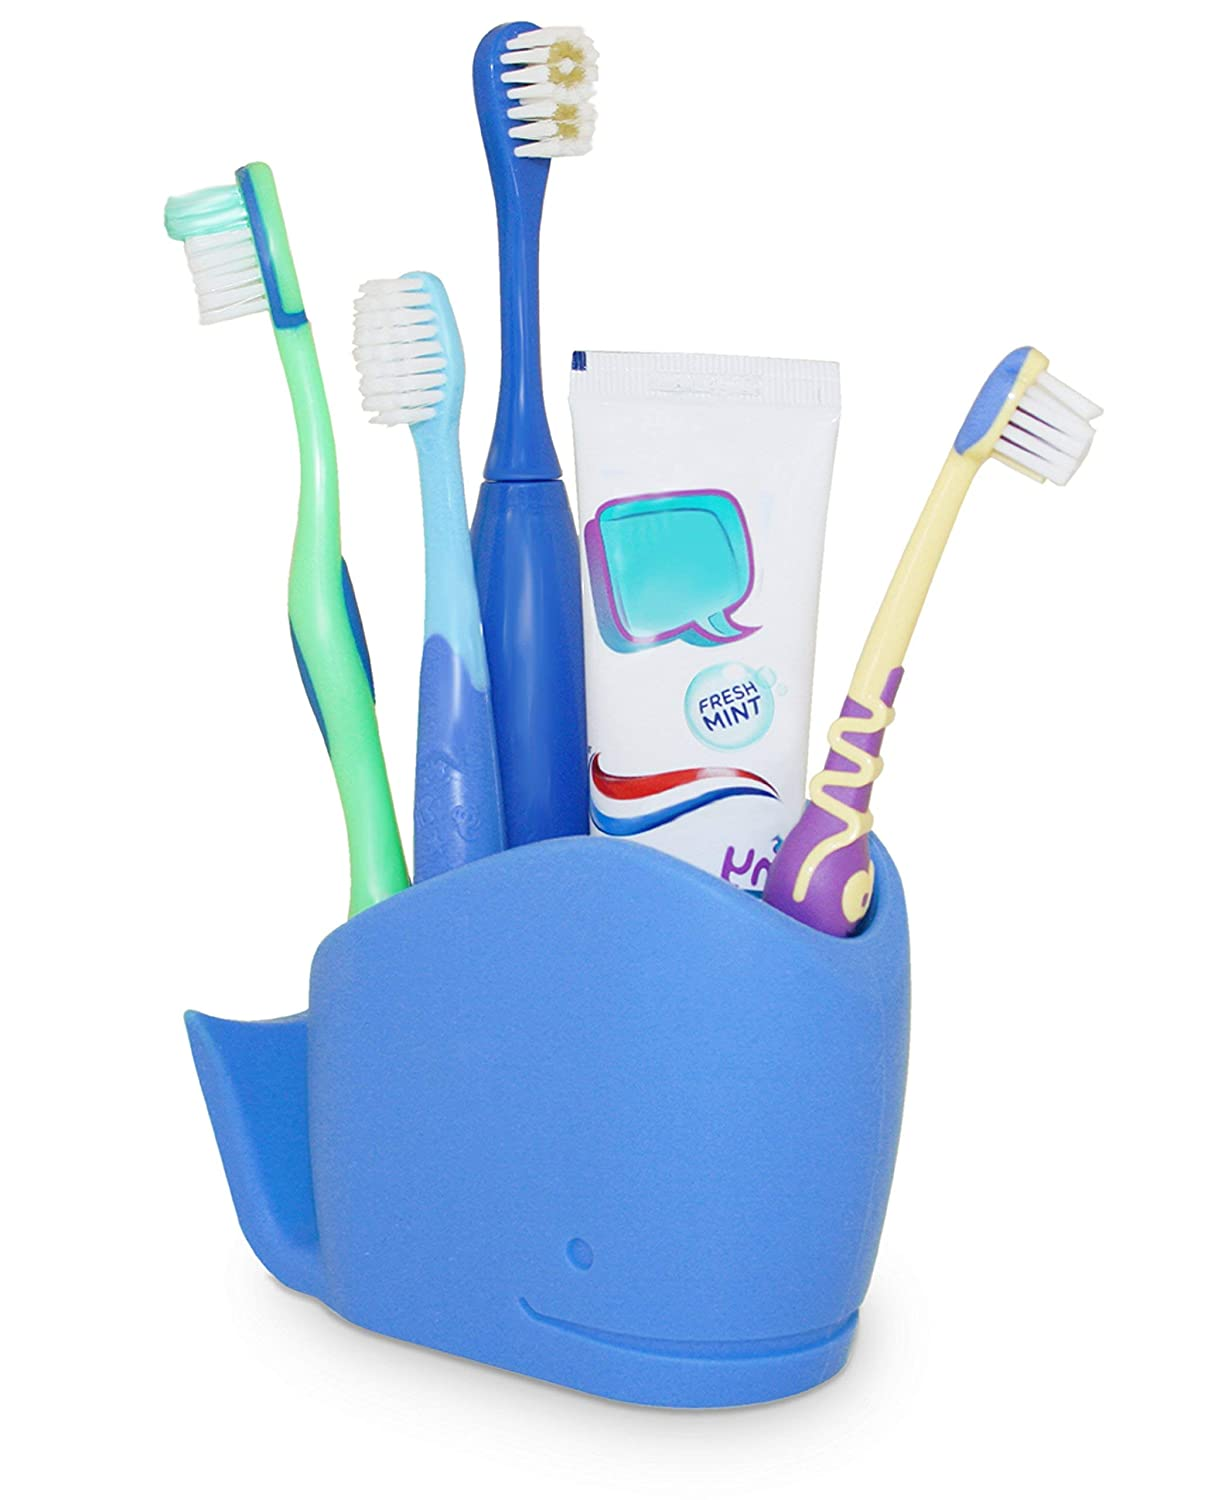 Toothbrush & Toothpaste holder - Animal Bathroom Tidy, Wilson The Whale, Blue j-me original design JMEWHALE-BLU